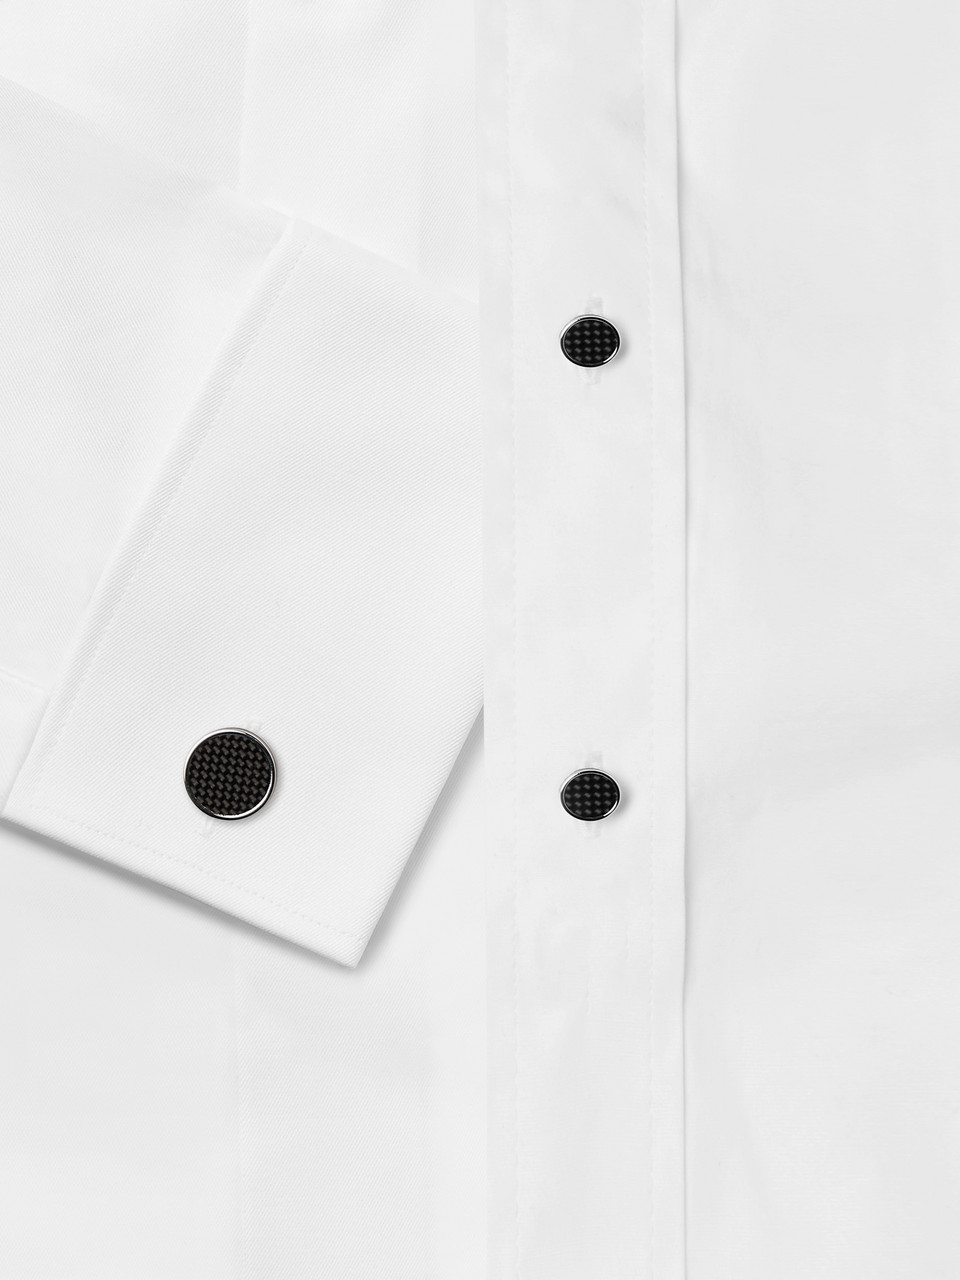 TATEOSSIAN Carbon Fibre and Enamel Rhodium-Plated Cufflinks and Studs Set